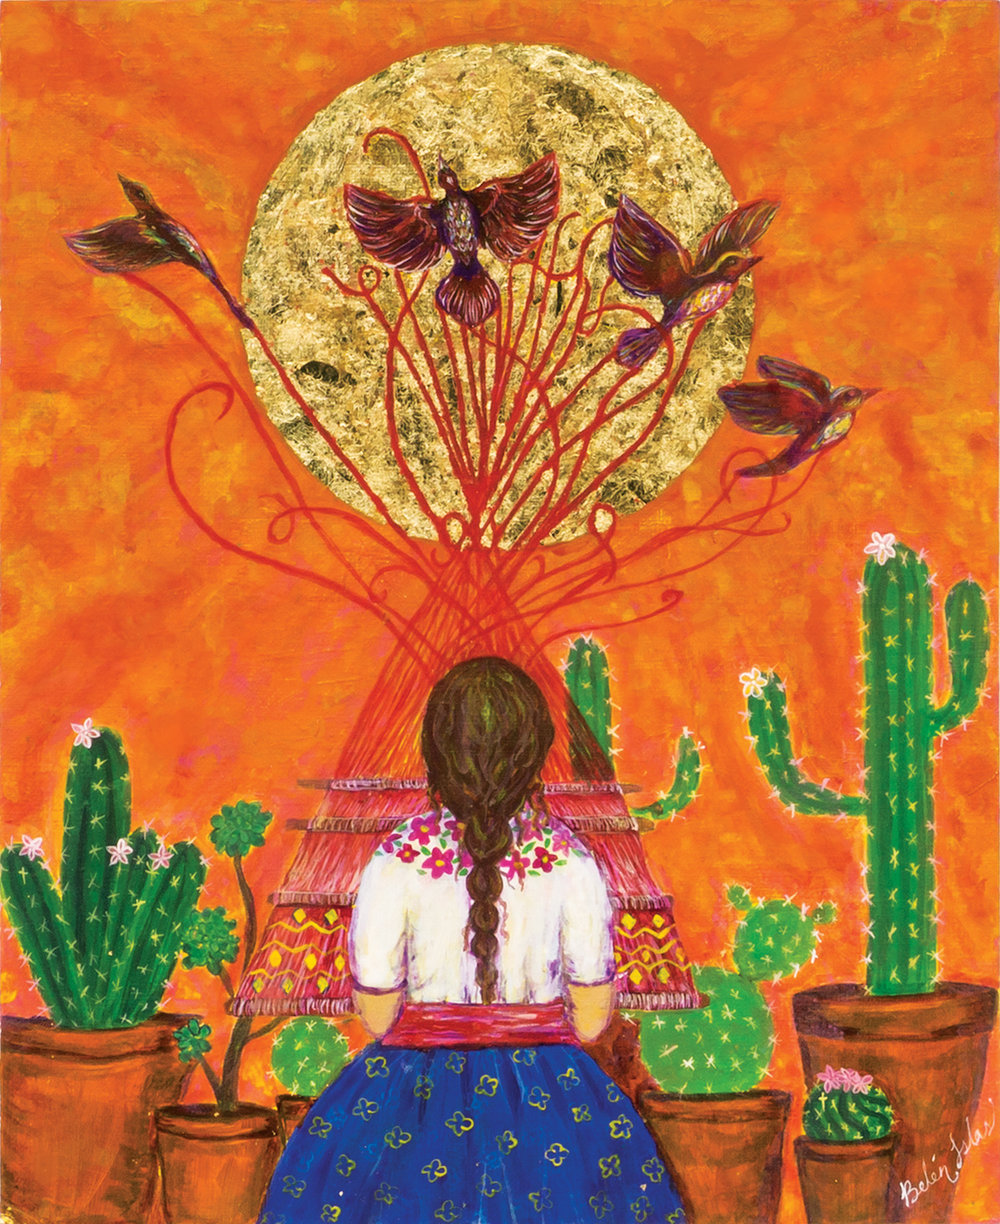 """The Weaver   Acrylic painting on Panel / Board / MDF  by  Belen Islas   Size: 9 x 11""""    $750.00"""